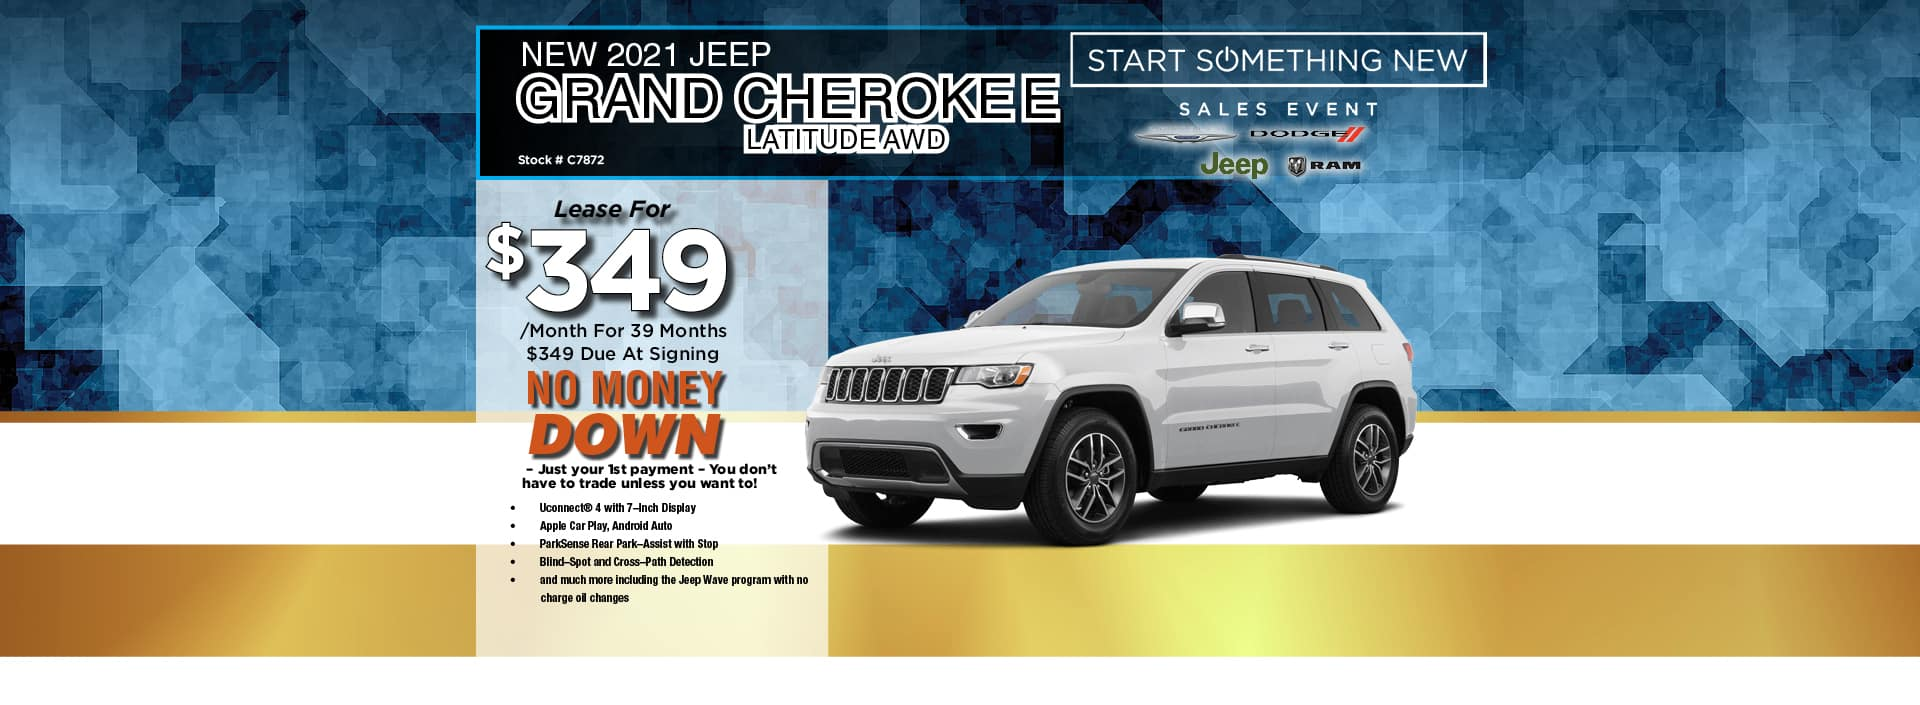 011.390.05_Midstate_1920x705_GrandCherokee_Dealer Web